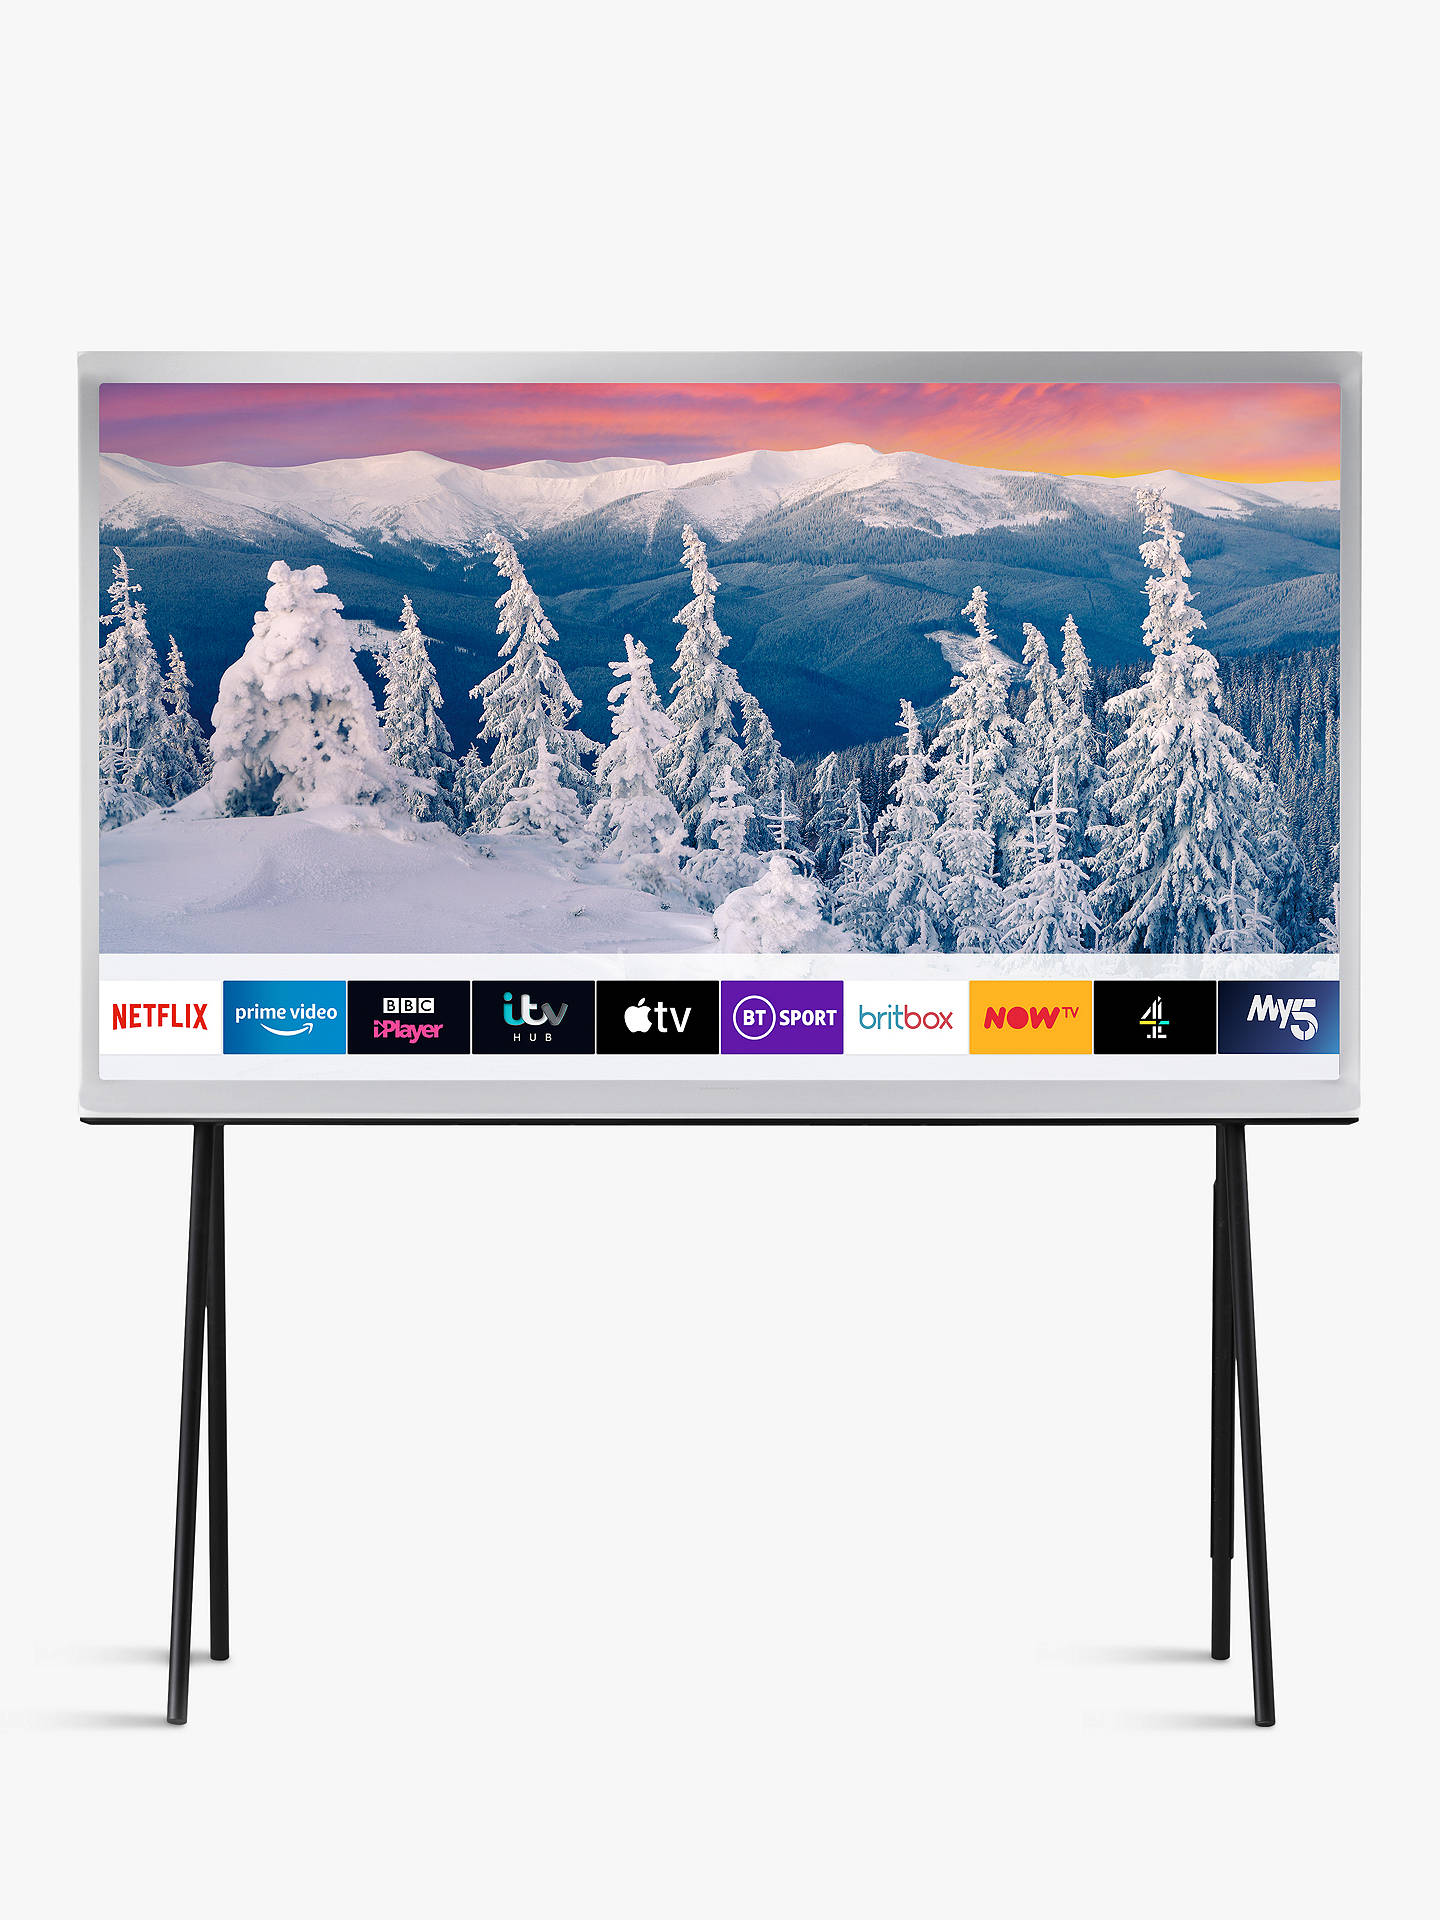 Samsung The Serif (2019) QLED HDR 4K Ultra HD Smart TV, 55